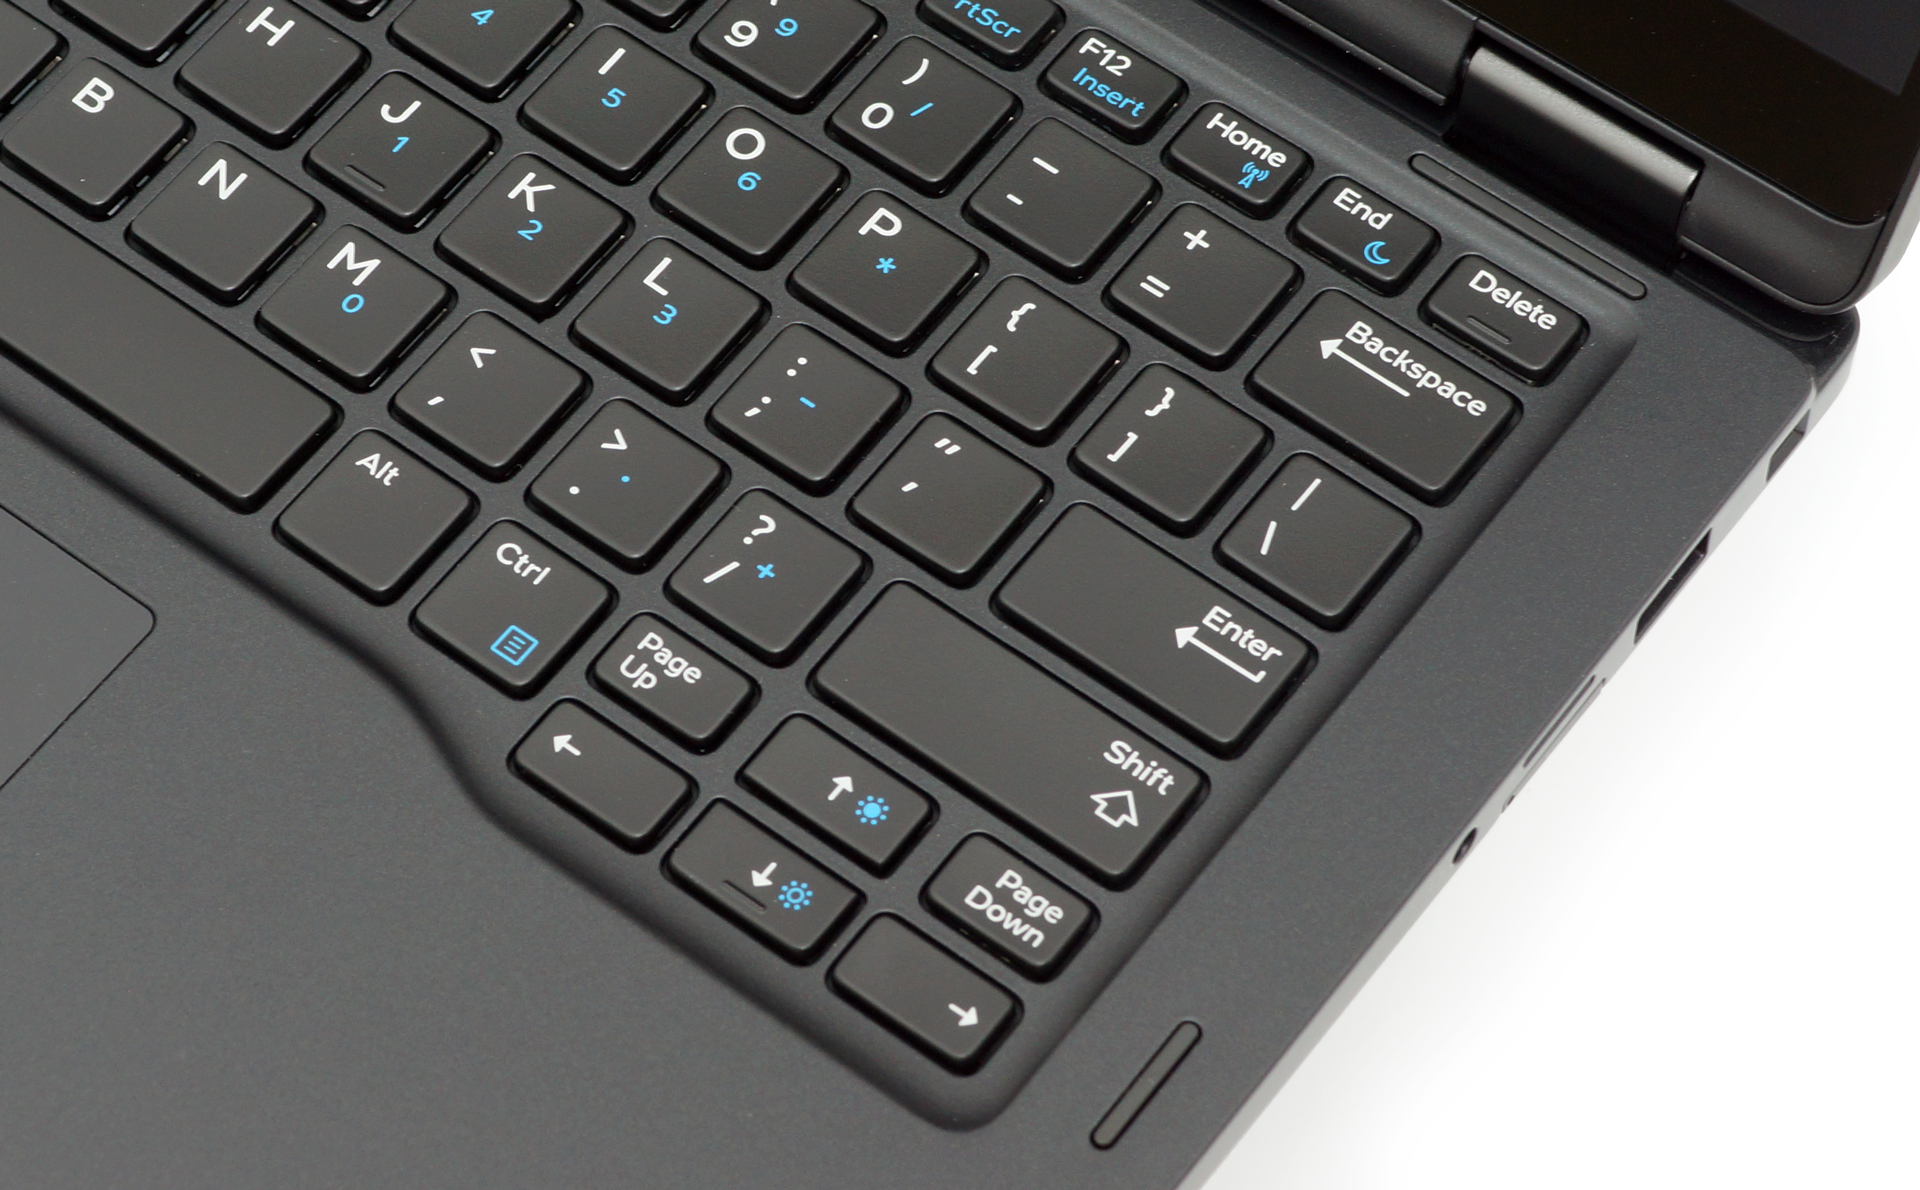 Dell Latitude 7390 2-in-1 review – tiny performance beast